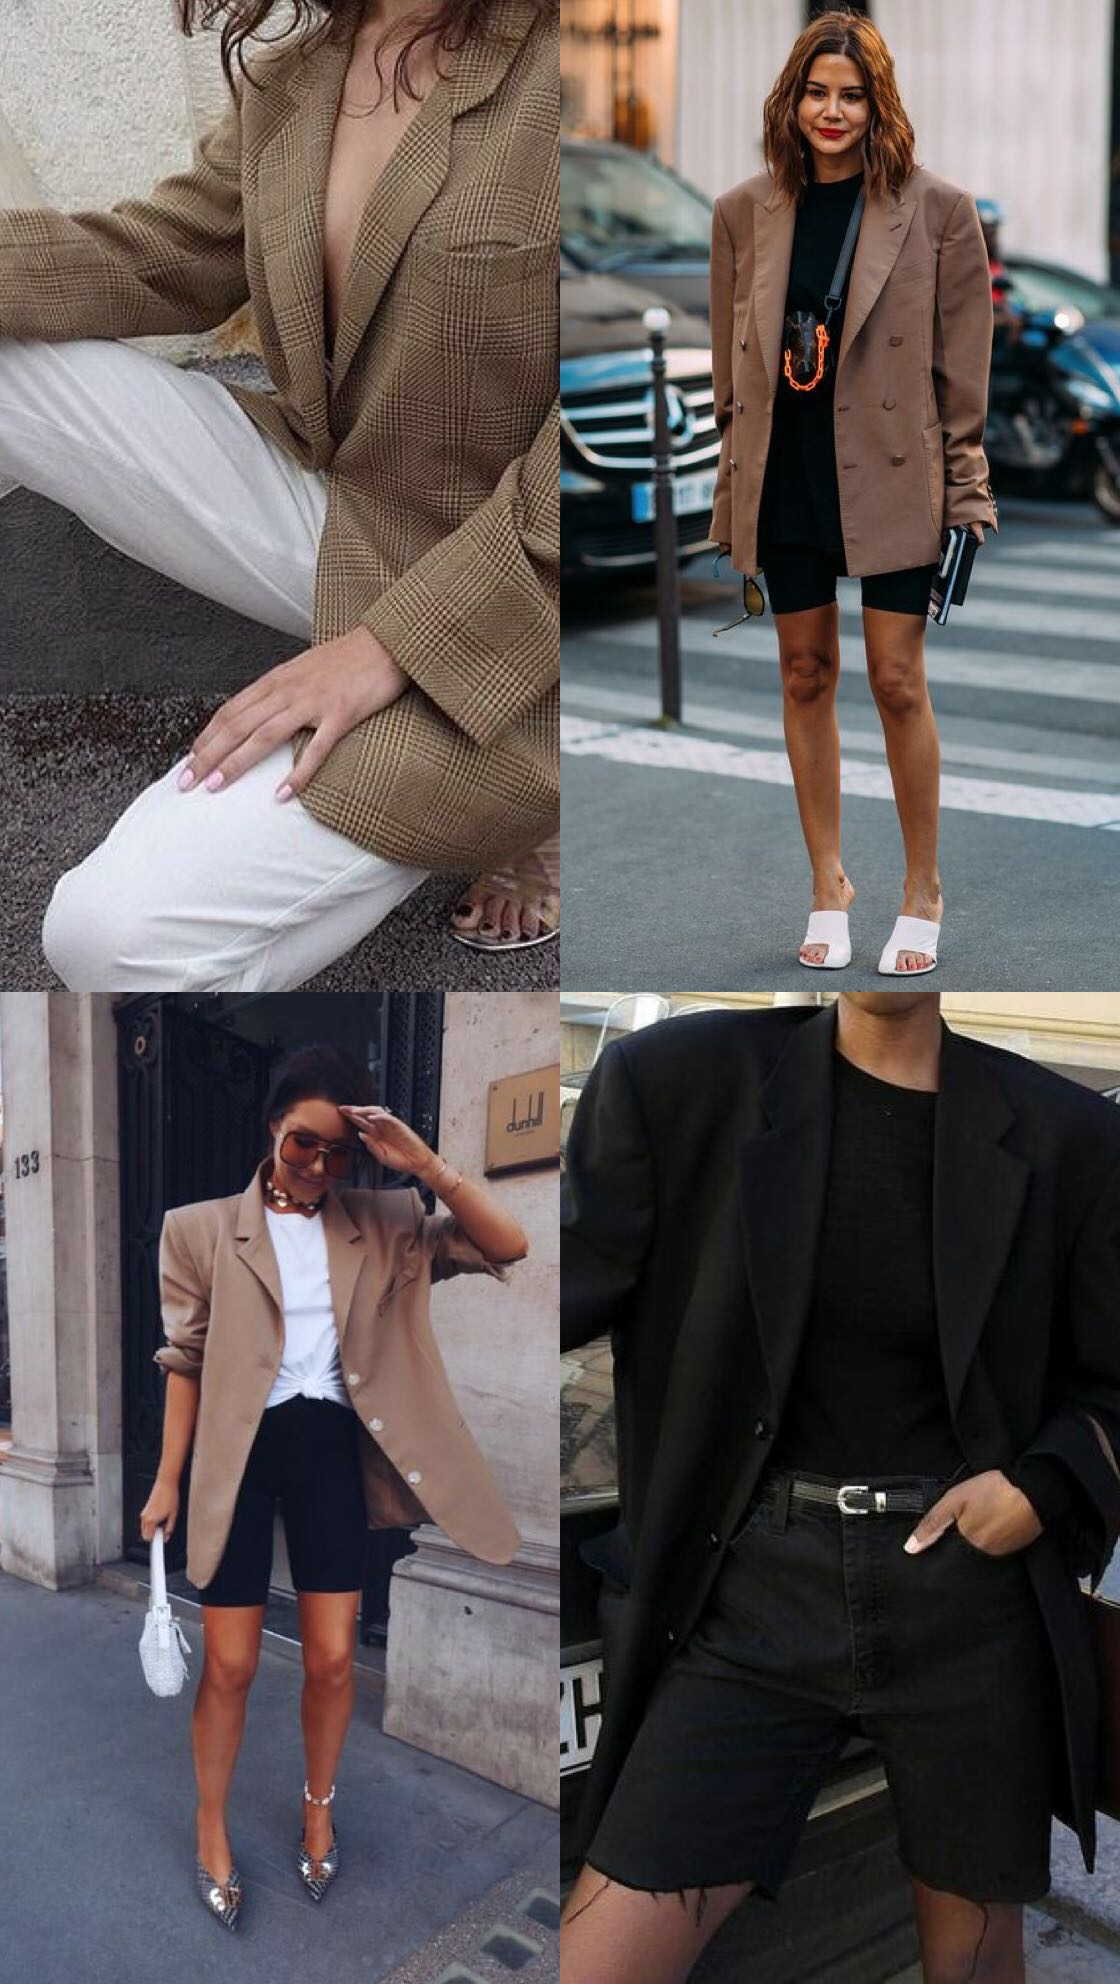 WORKWEAR OUTFIT IDEAS - OVERSIZED BLAZERS